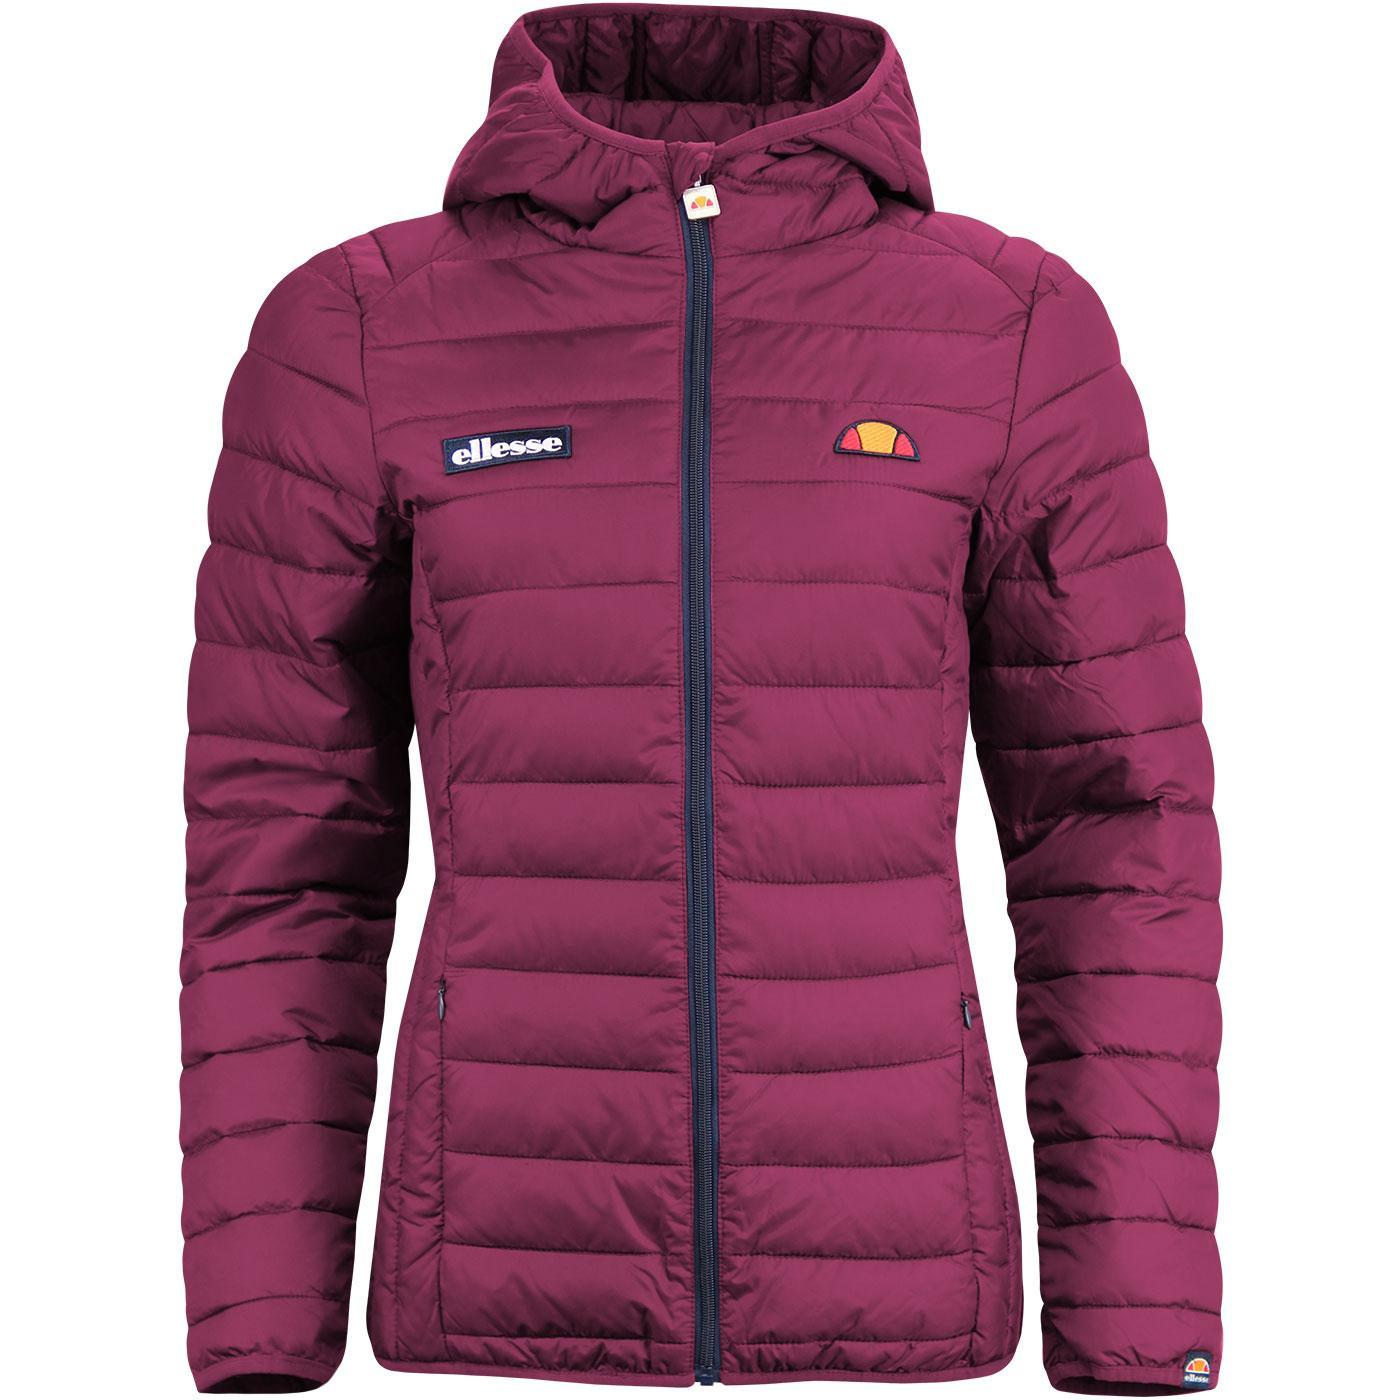 f1e02fa7 ELLESSE Lompard Retro 70s Padded Ski Jacket Purple Potion